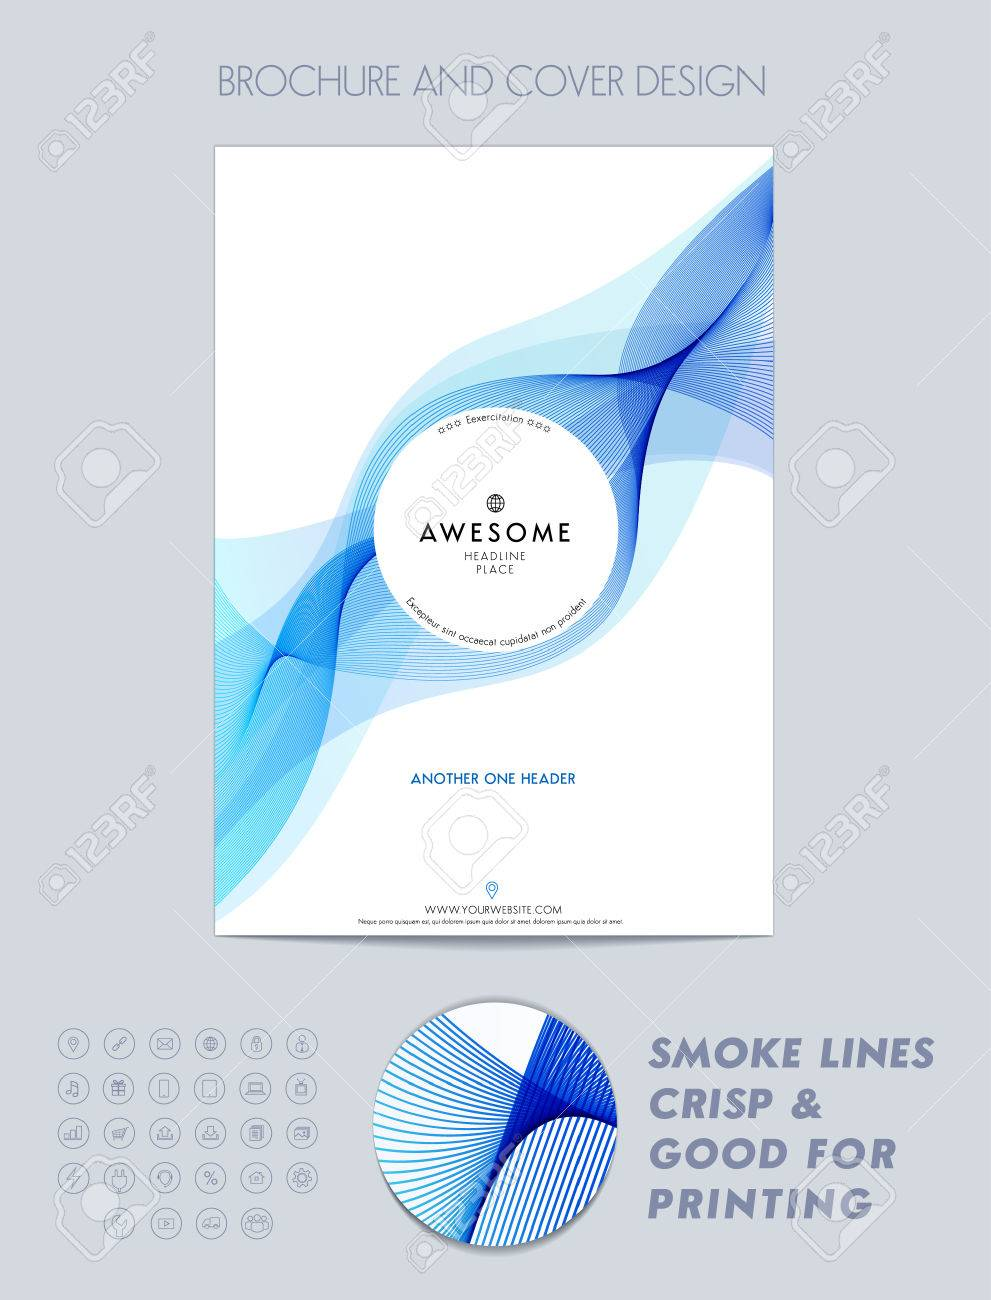 Layout cover design, brochure template, magazine, flyer, booklet or report in A4 blue color. - 52680644